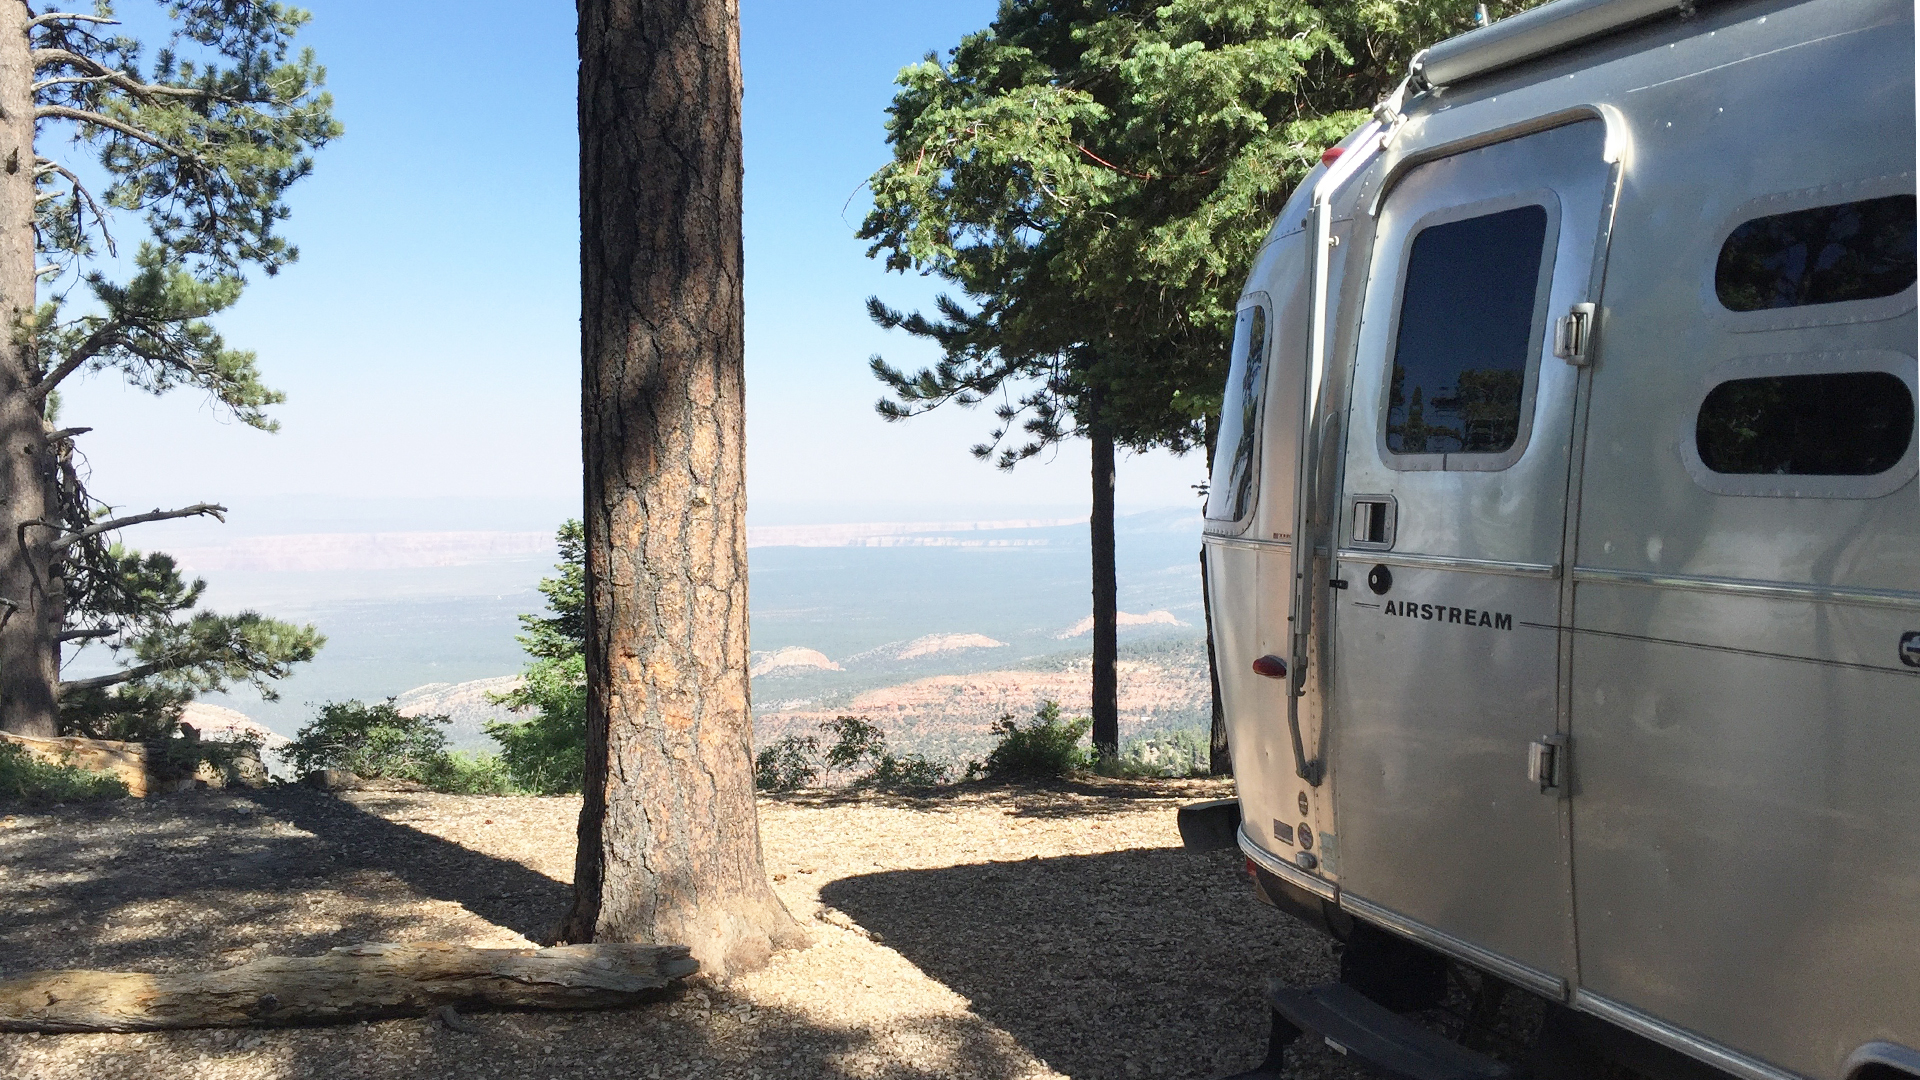 Airstream-Portable-Parks-Best-Camping-at-Grand-Canyon-National-Park